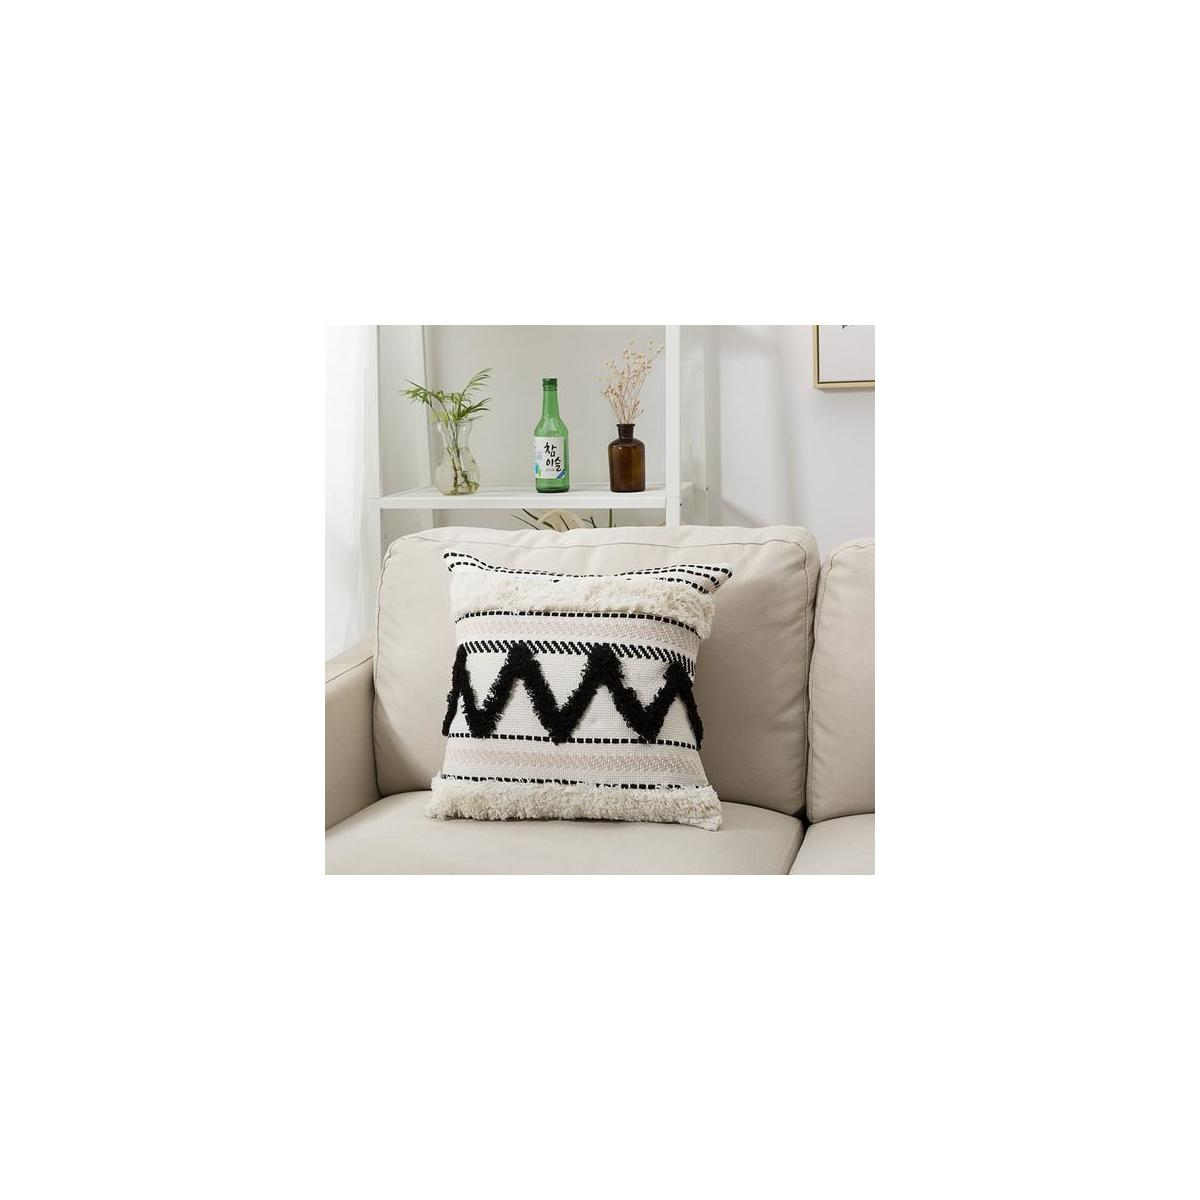 All Colors Available Morocco Tufted Boho Throw Pillow Covers 18x18 Inch Cashback Rebatekey